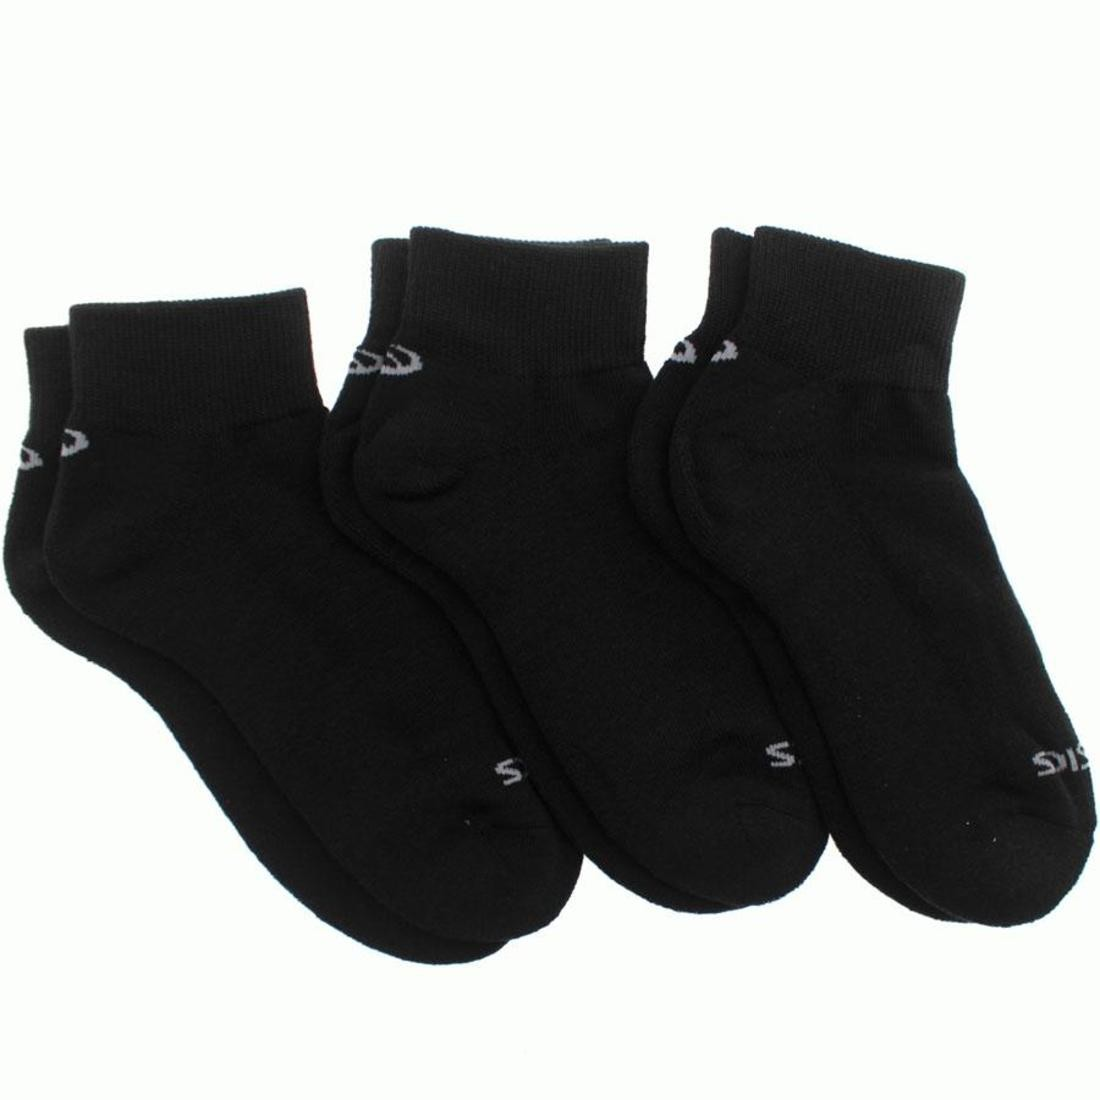 asics tiger 3 pack cushion quarter socks (black)